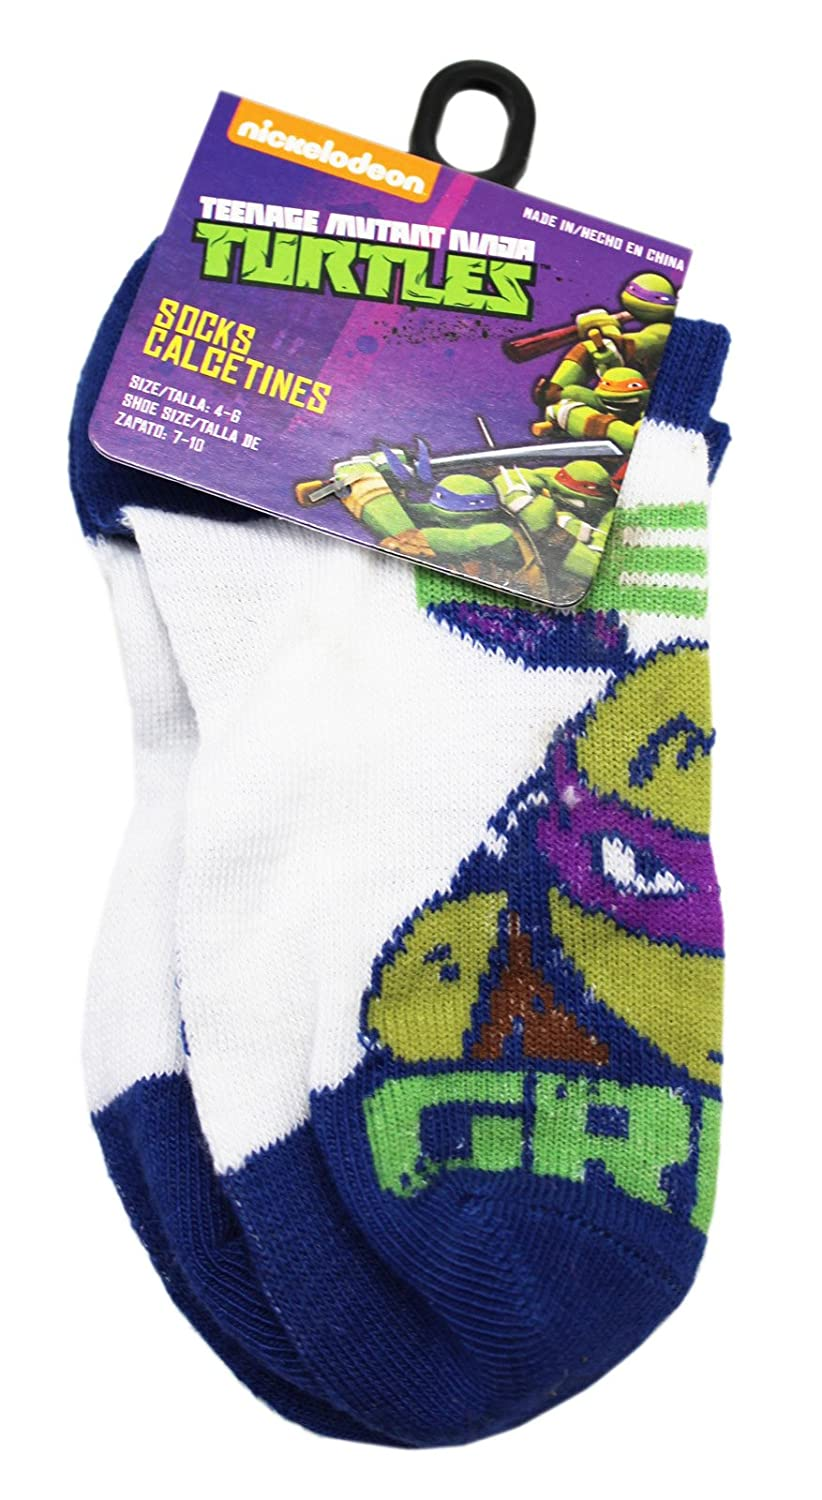 Amazon.com: Teenage Mutant Ninja Turtles Donatello Blue/White Socks (1 Pair, Size 4-6): Clothing